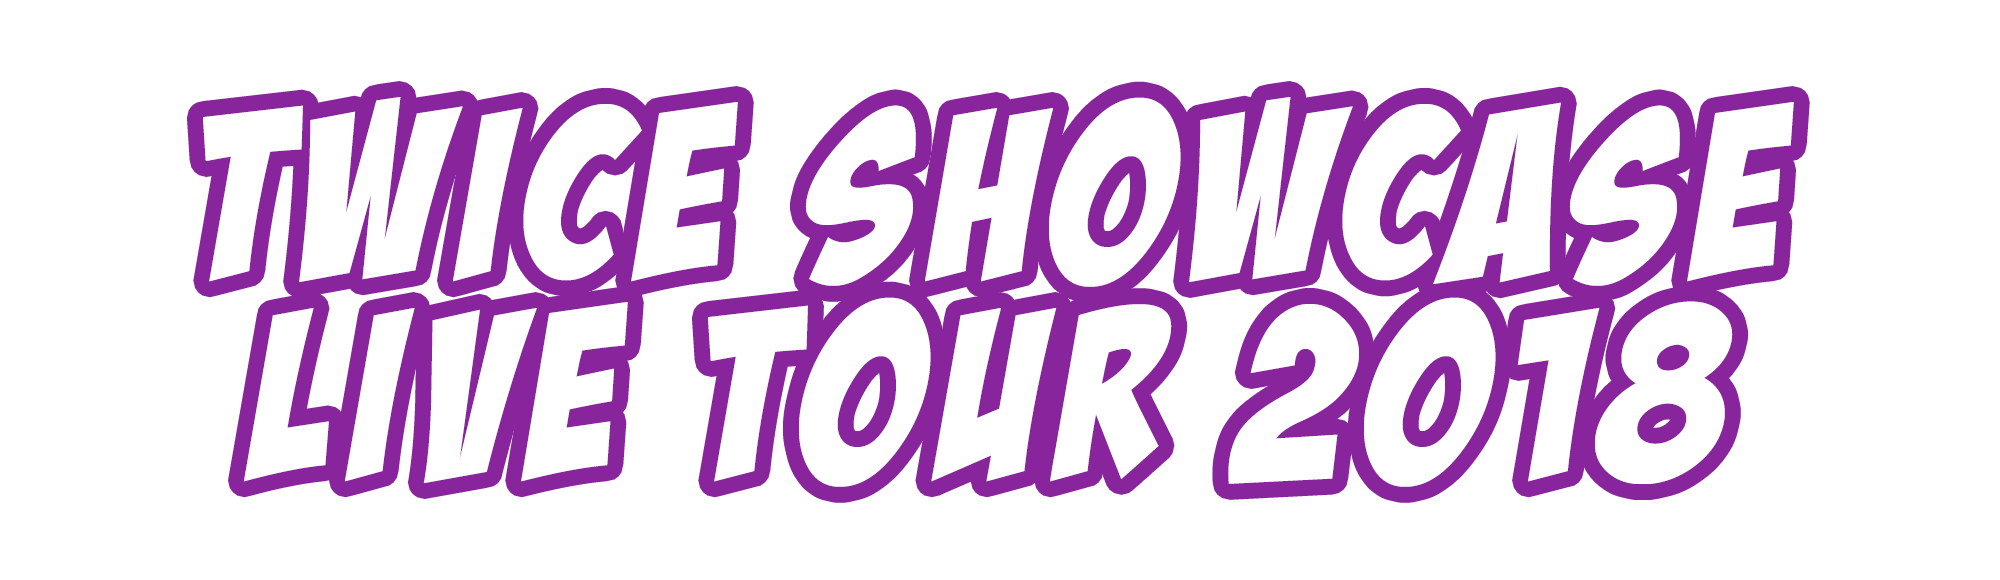 TWICE SHOWCASE LIVE TOUR 2018 開催決定!